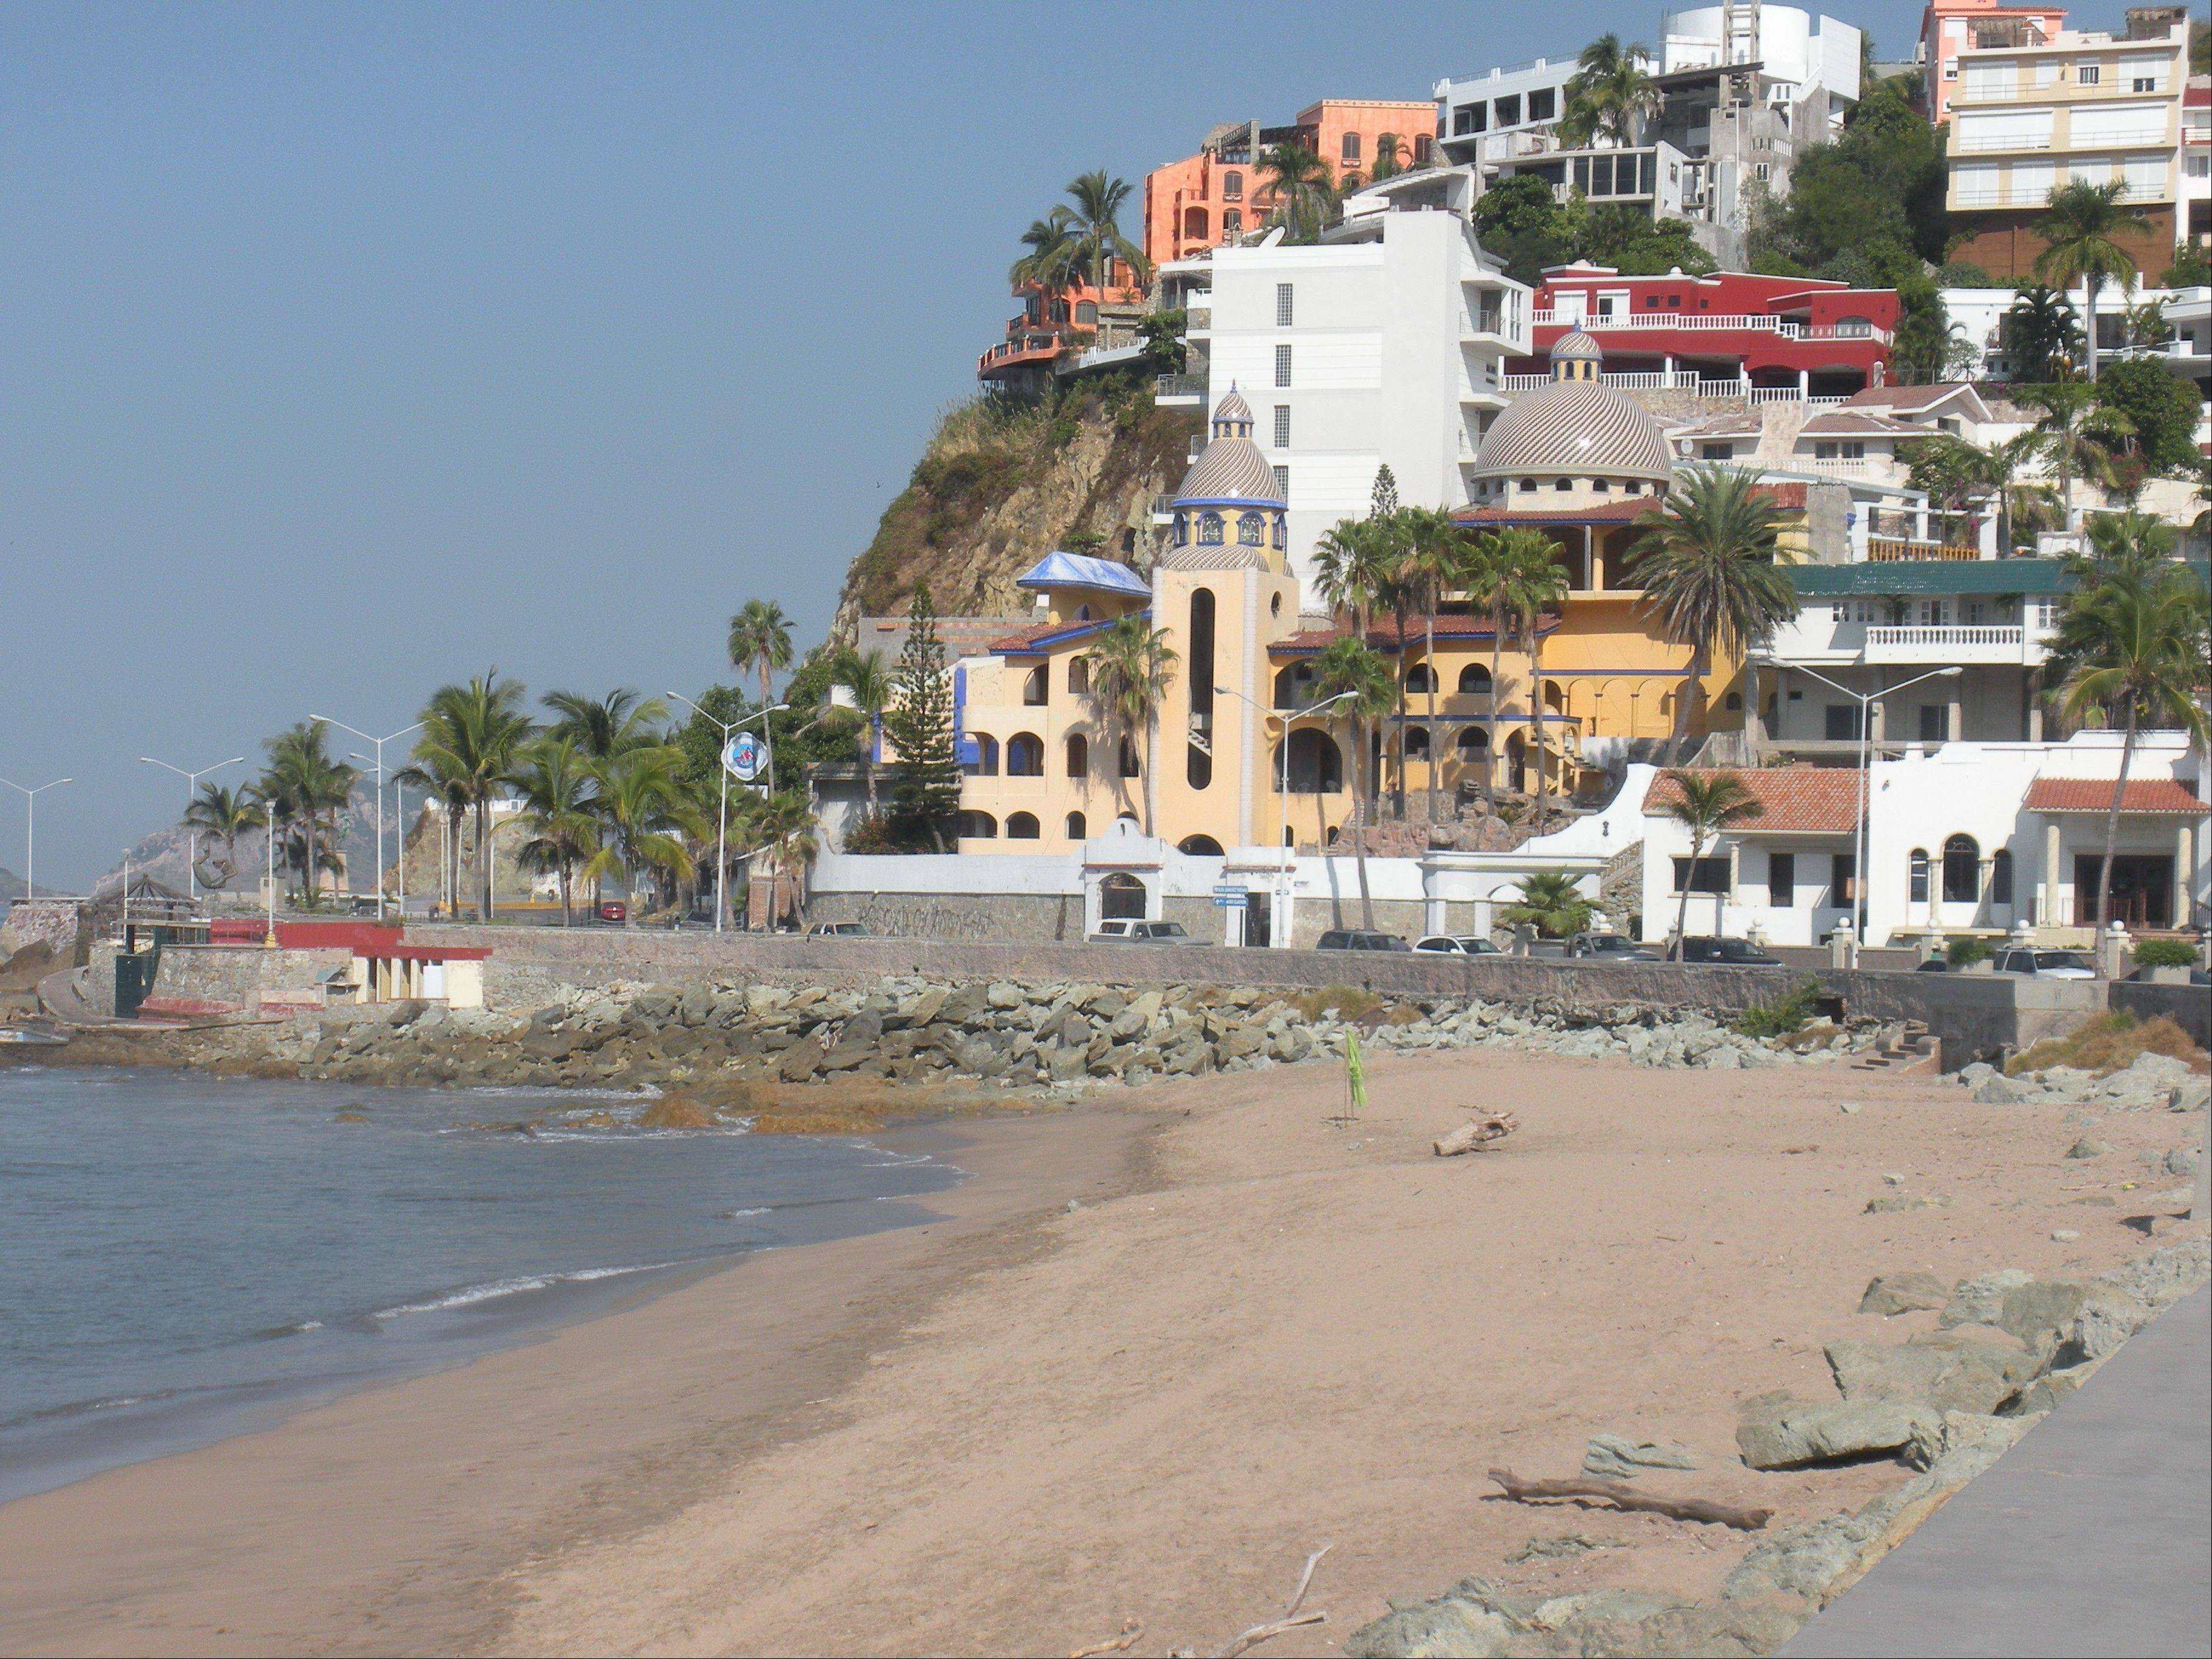 Located along Pacific Ocean, Mazatlan offers visitors boatloads of fresh seafood and beautiful sunsets.